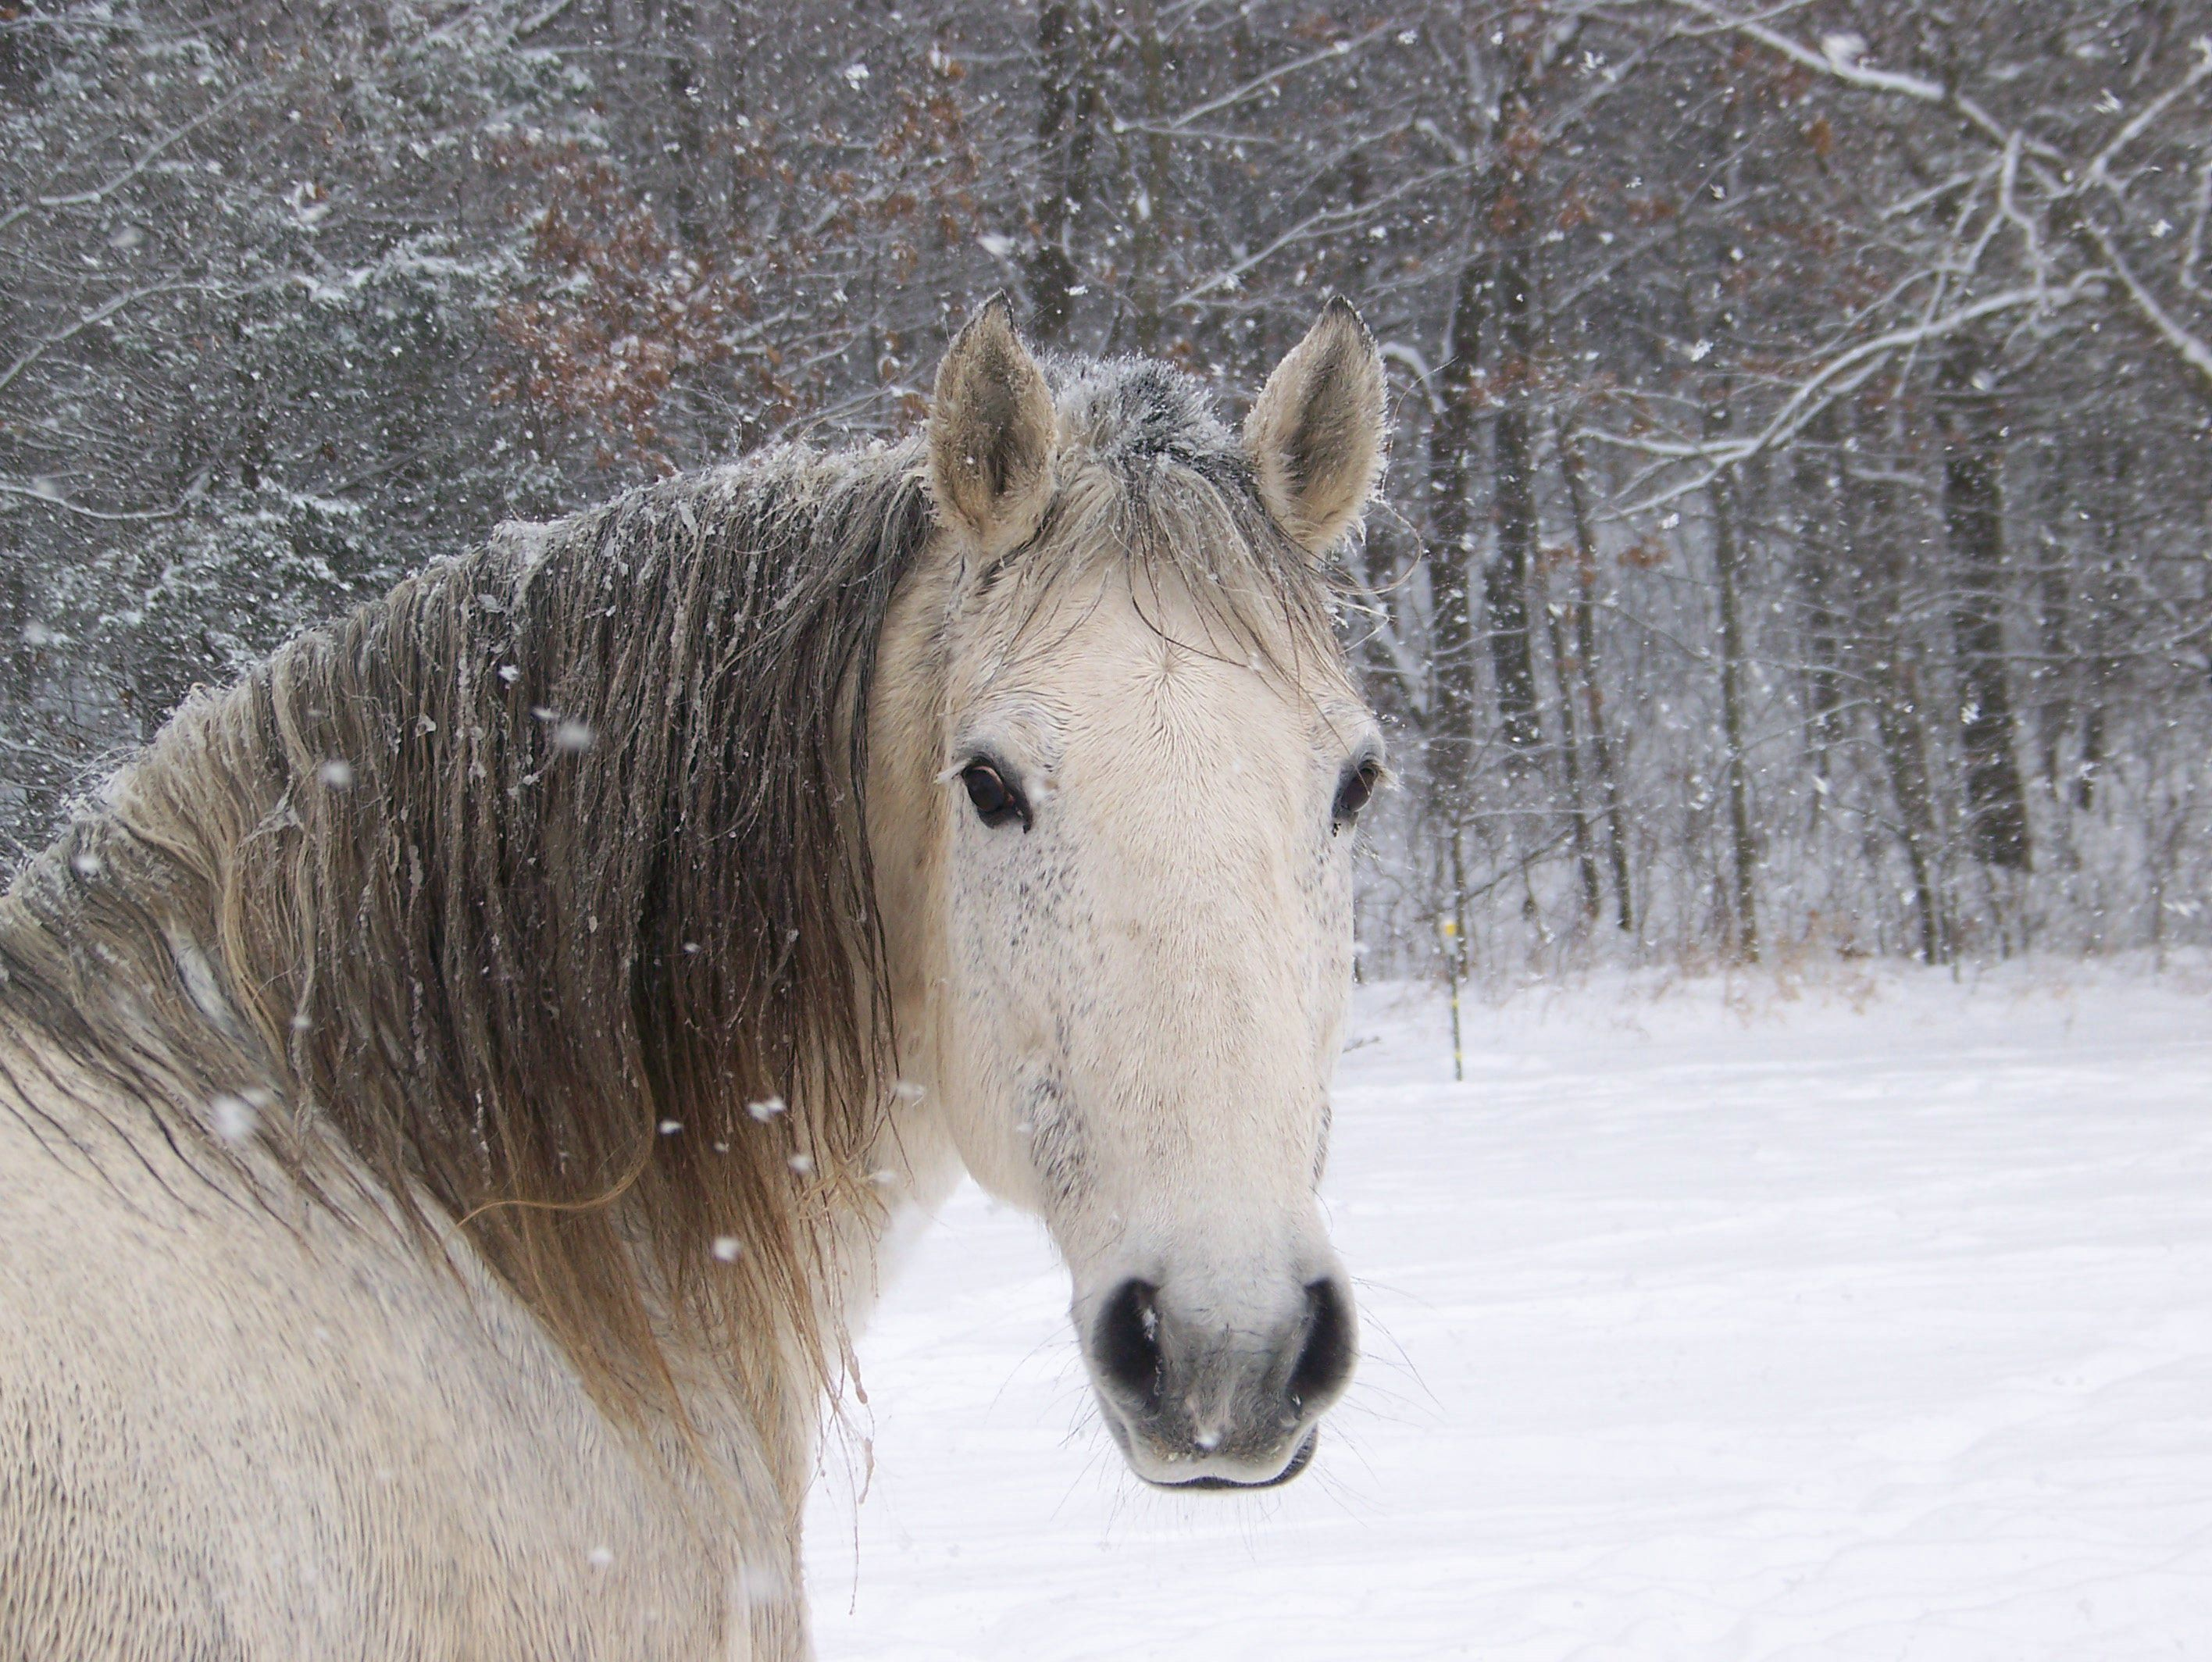 Horses are really cute animals and remained faithful with